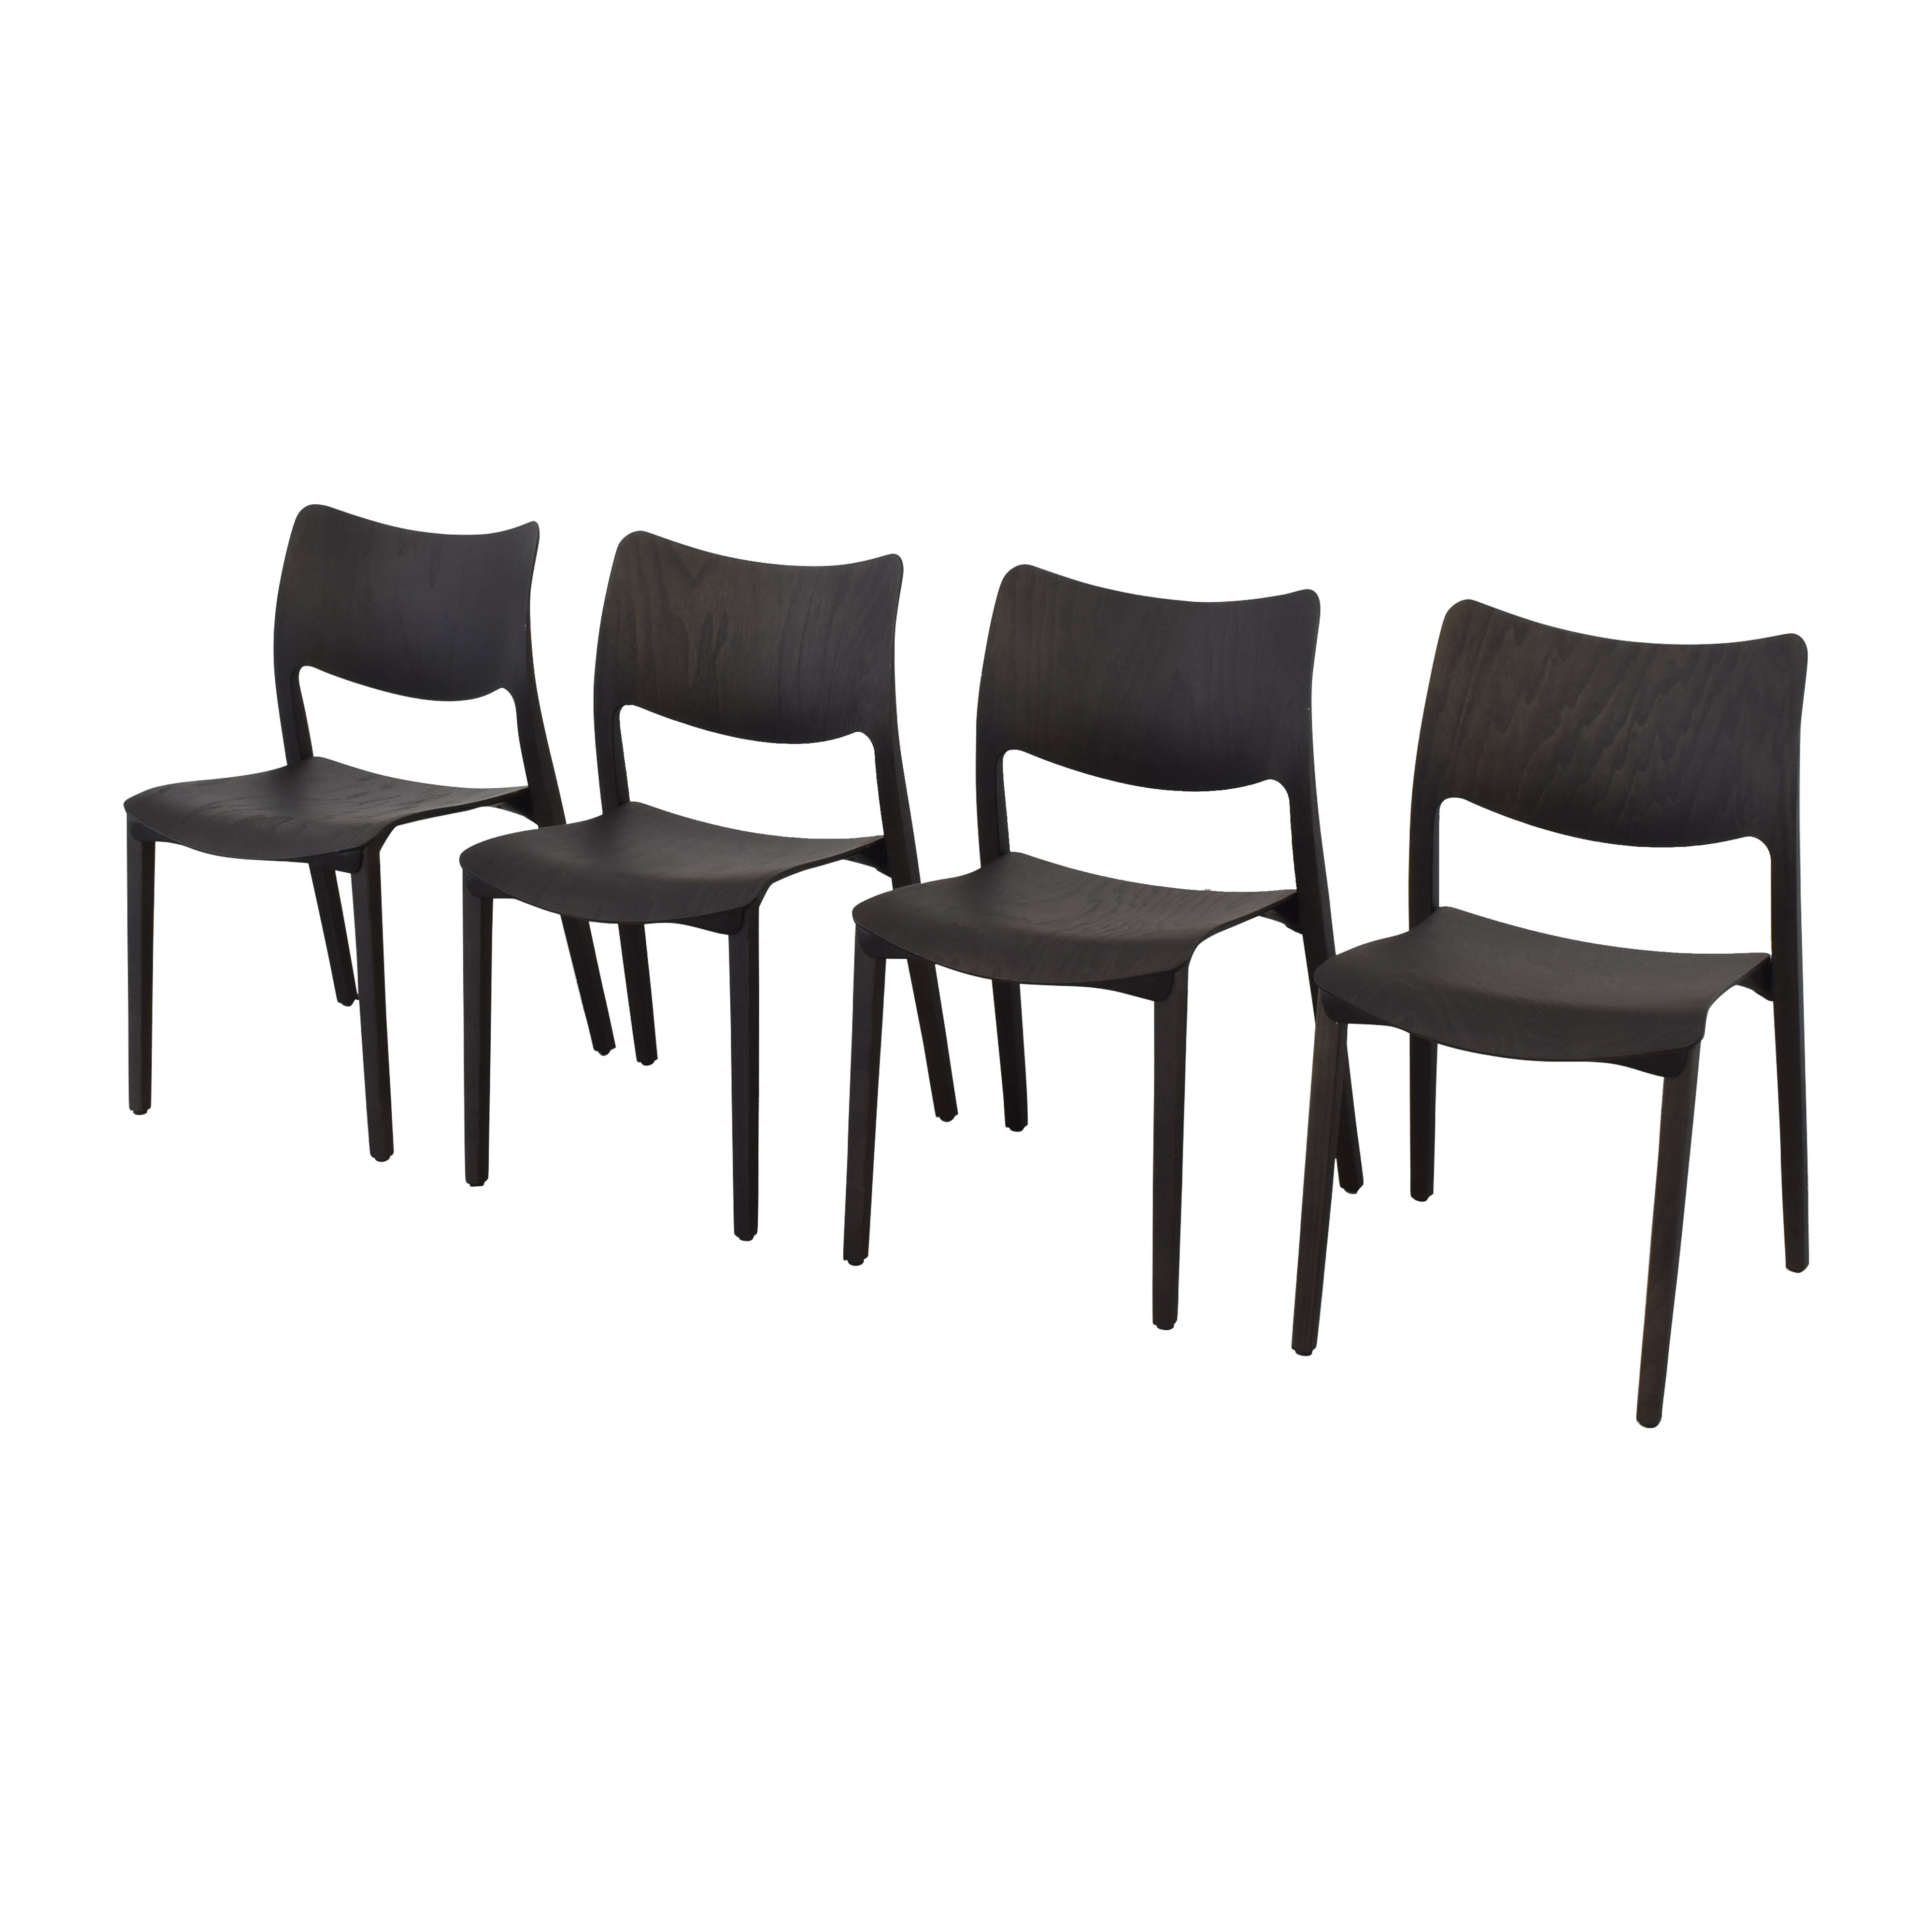 buy Design Within Reach Design Within Reach Laclasica Dining Chairs online